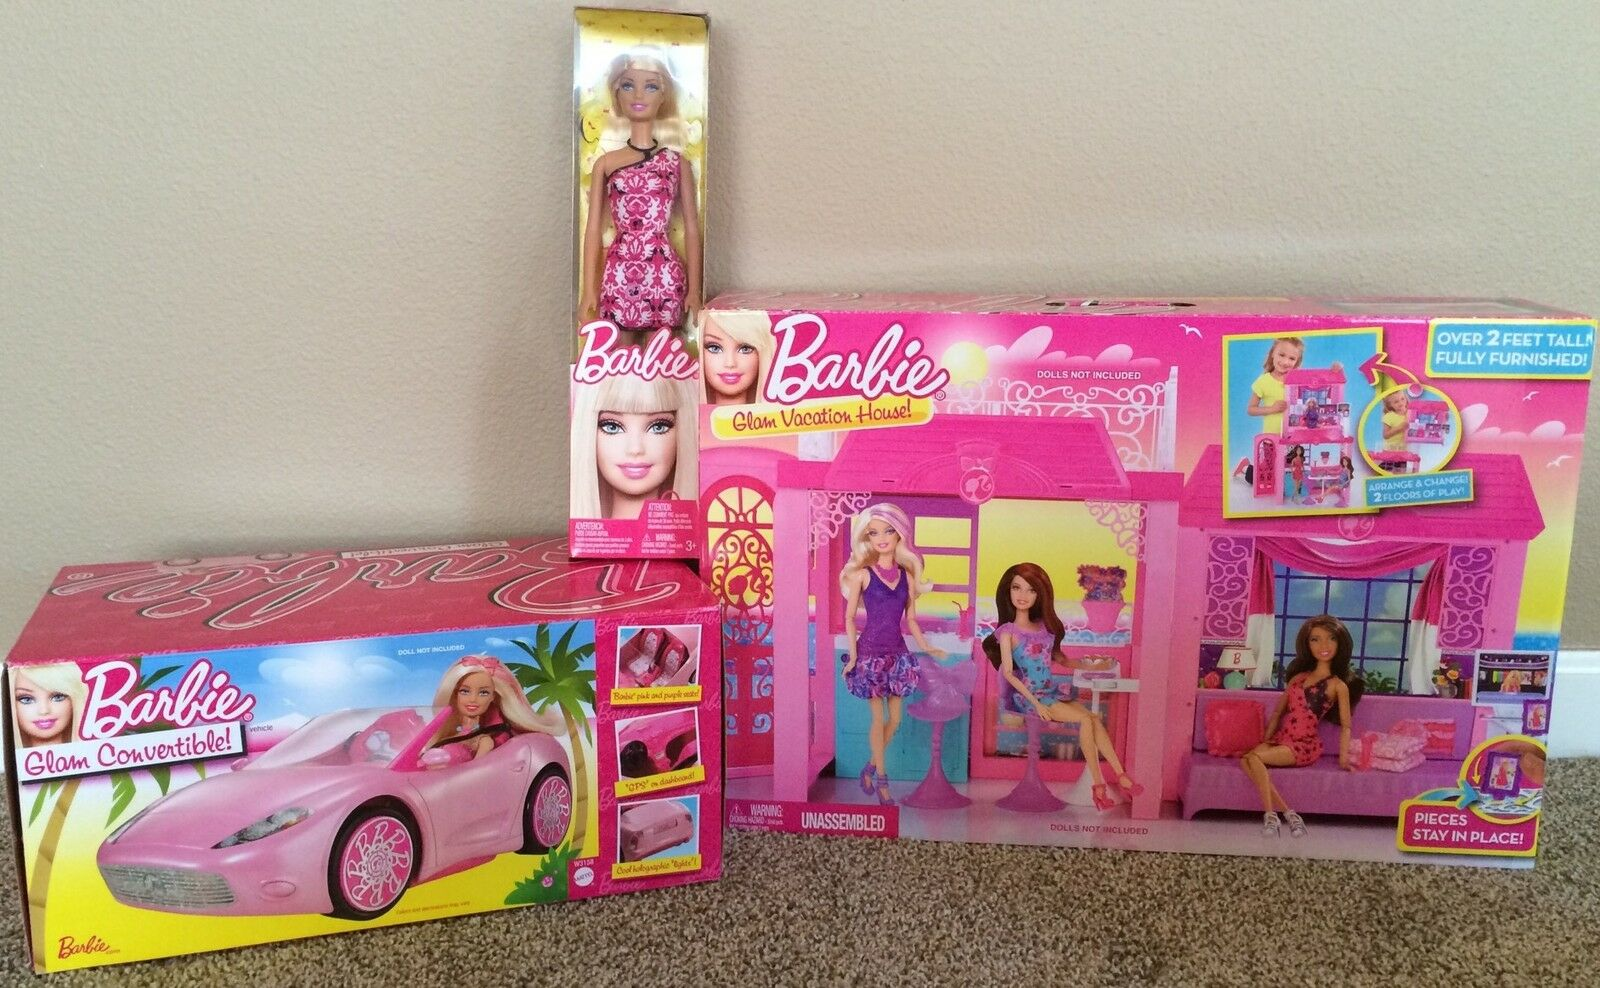 Barbie Doll & Glam Vacation haus & ConGrünible voiture Play Set NIP